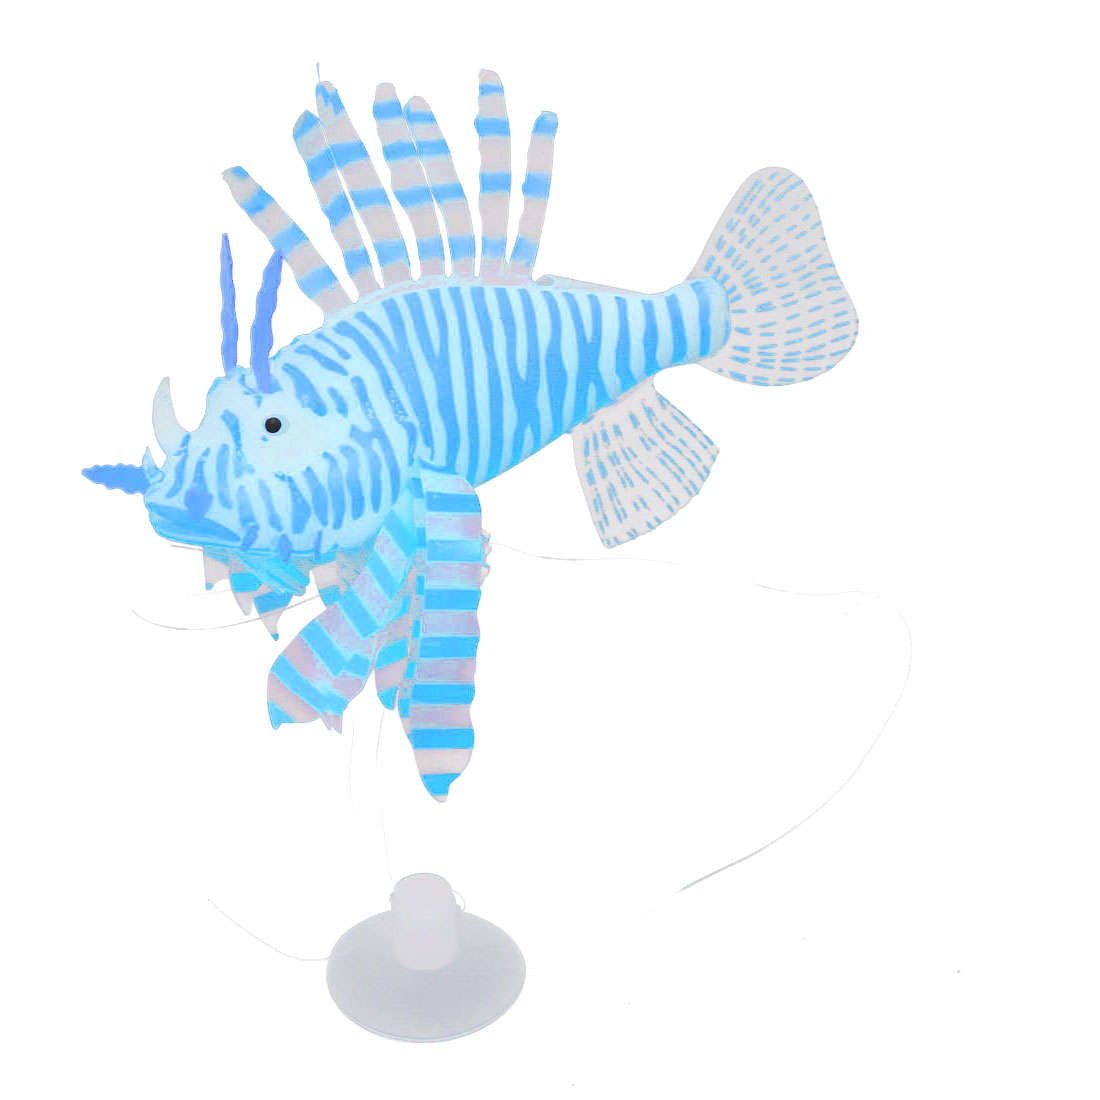 Blue Simulated Artificial Silicone Lionfish Ornament for Aquarium